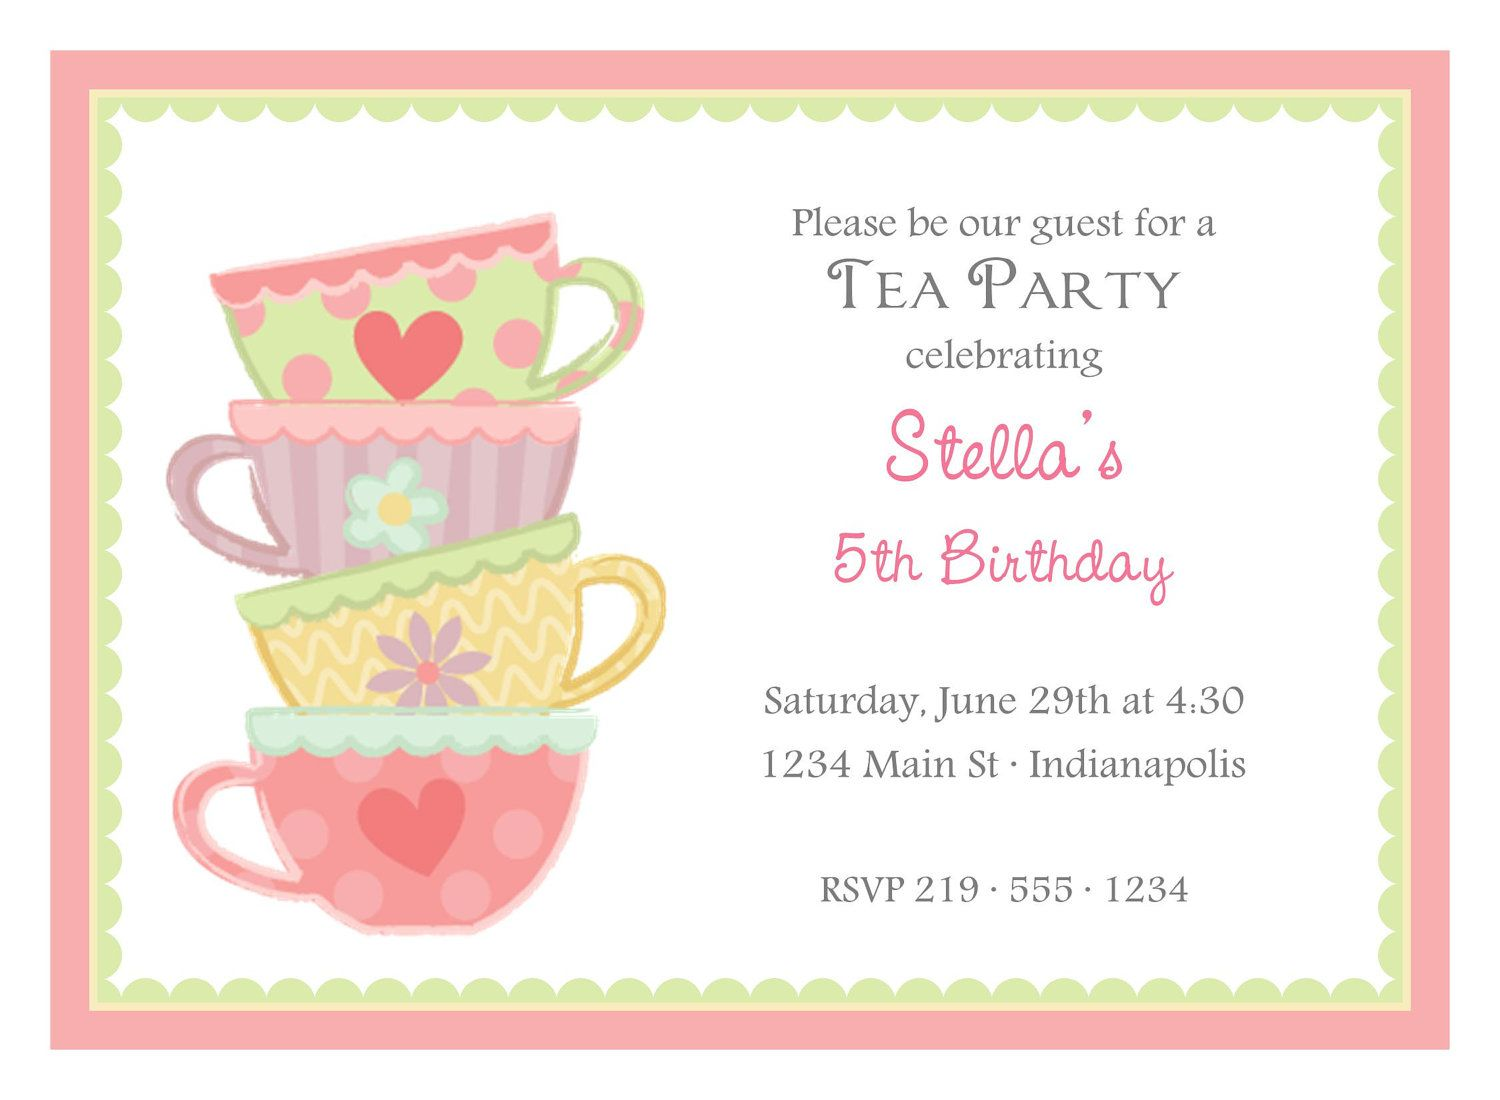 Tea party invitation template google search tea party for Tea party menu template